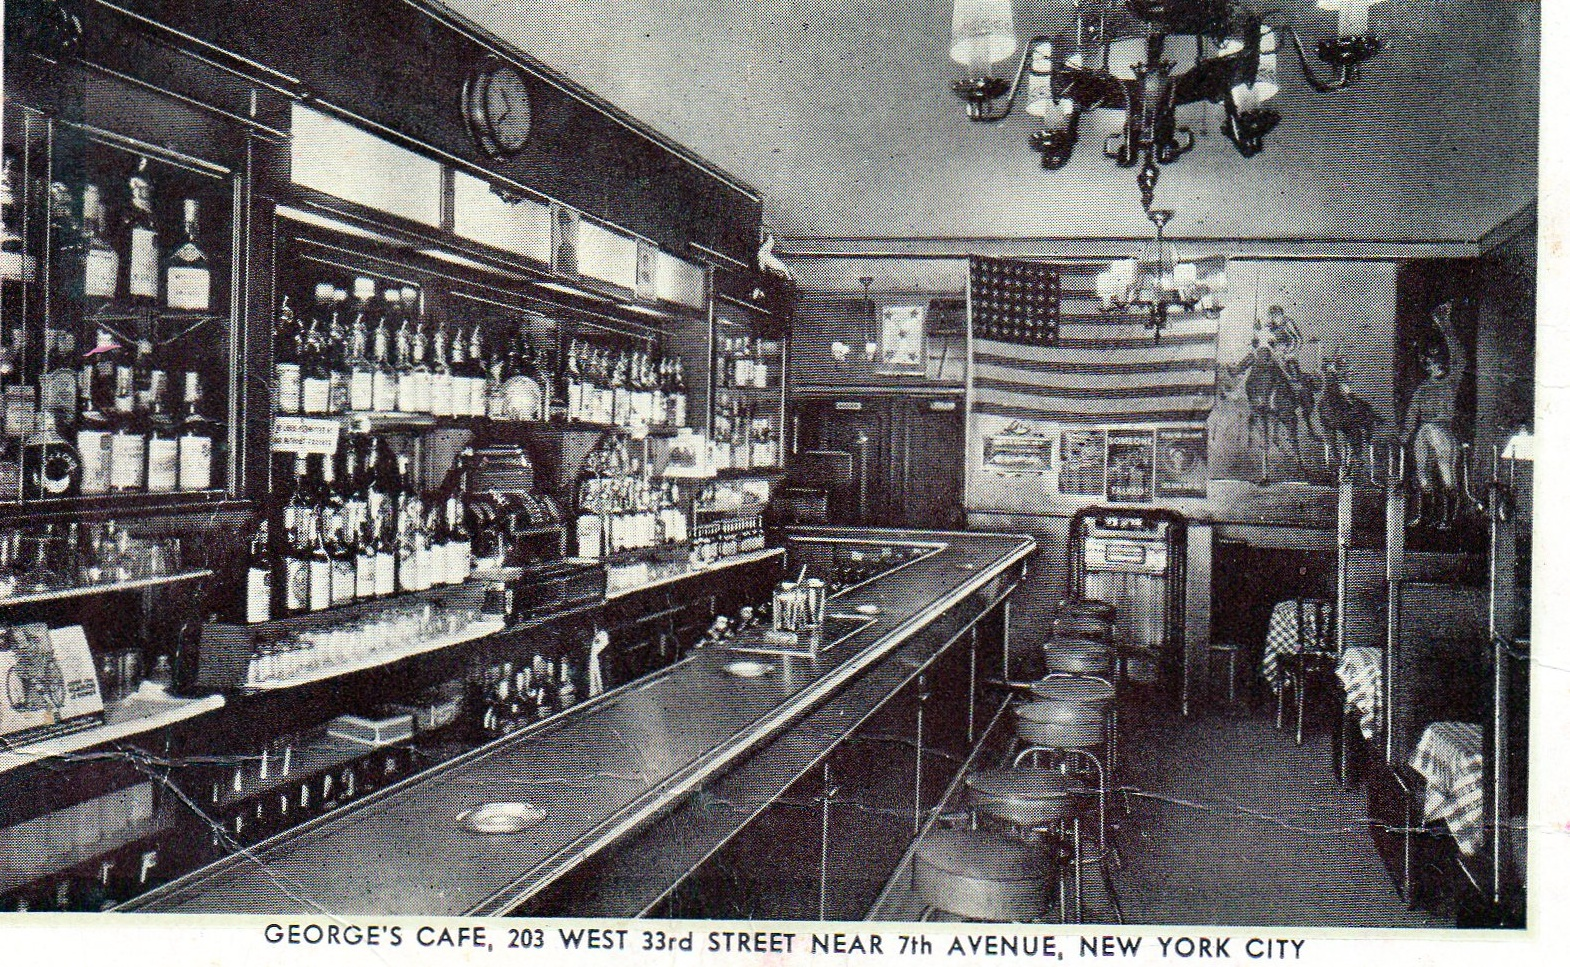 A 1940s Midtown Bar Vanishes Without A Trace Ephemeral